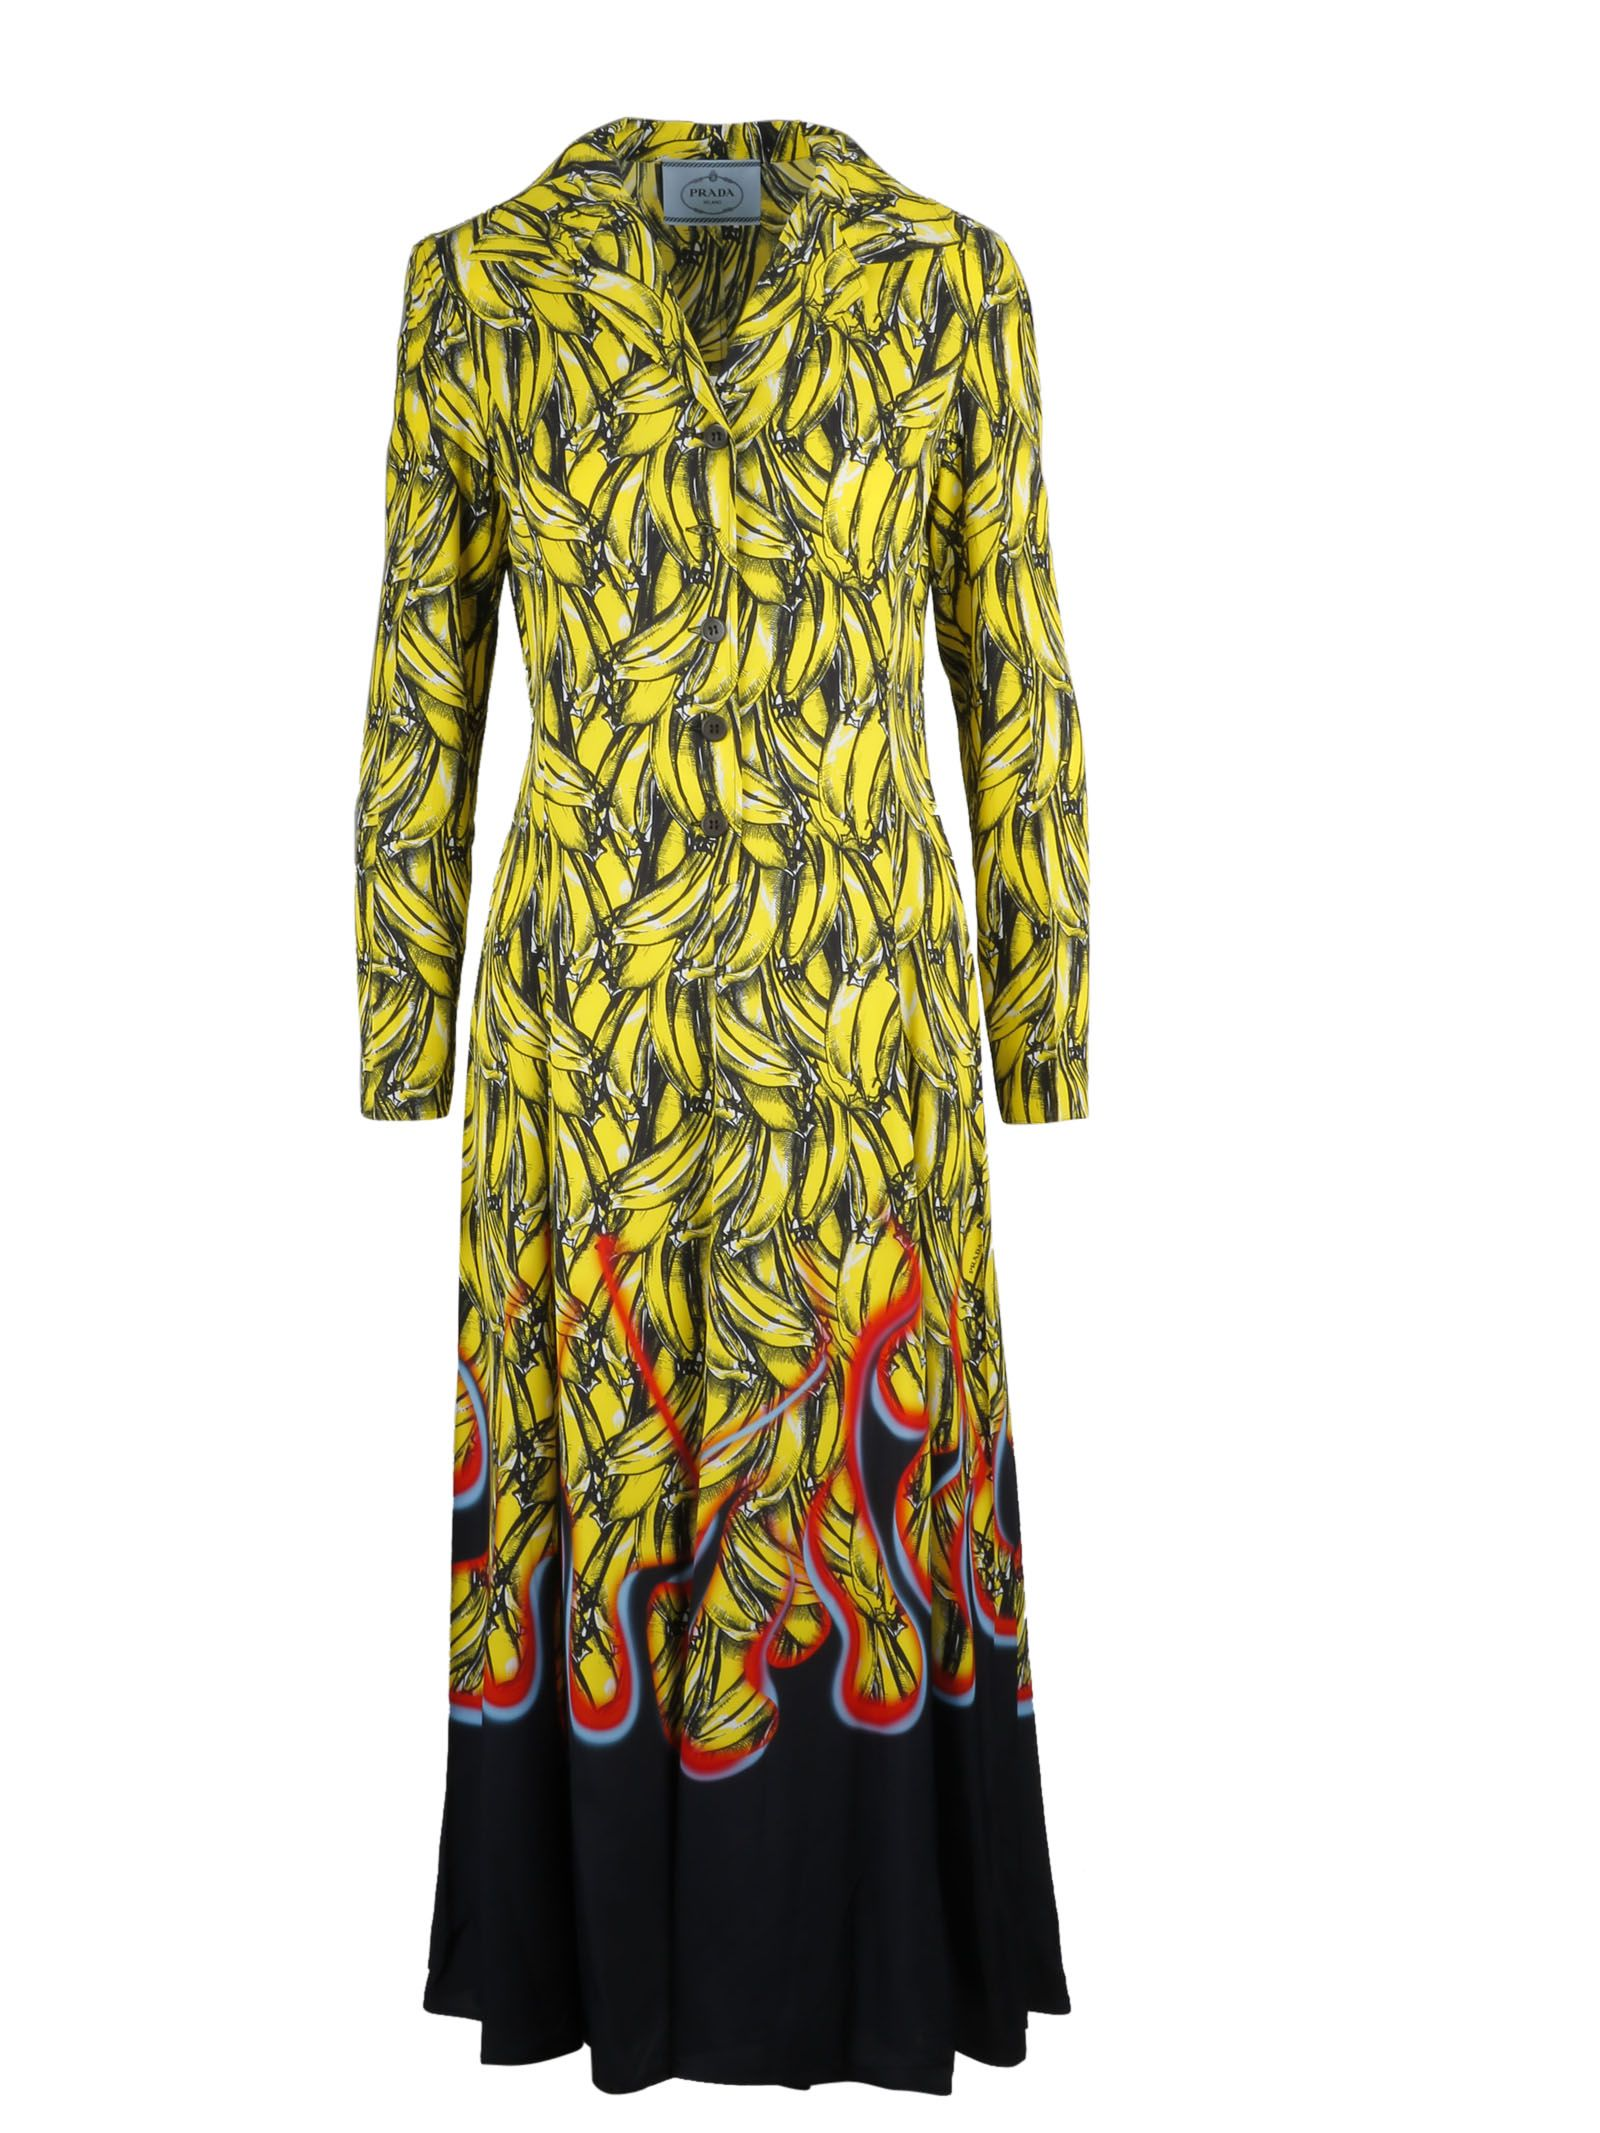 Bananas And Flames Dress in F0D7A